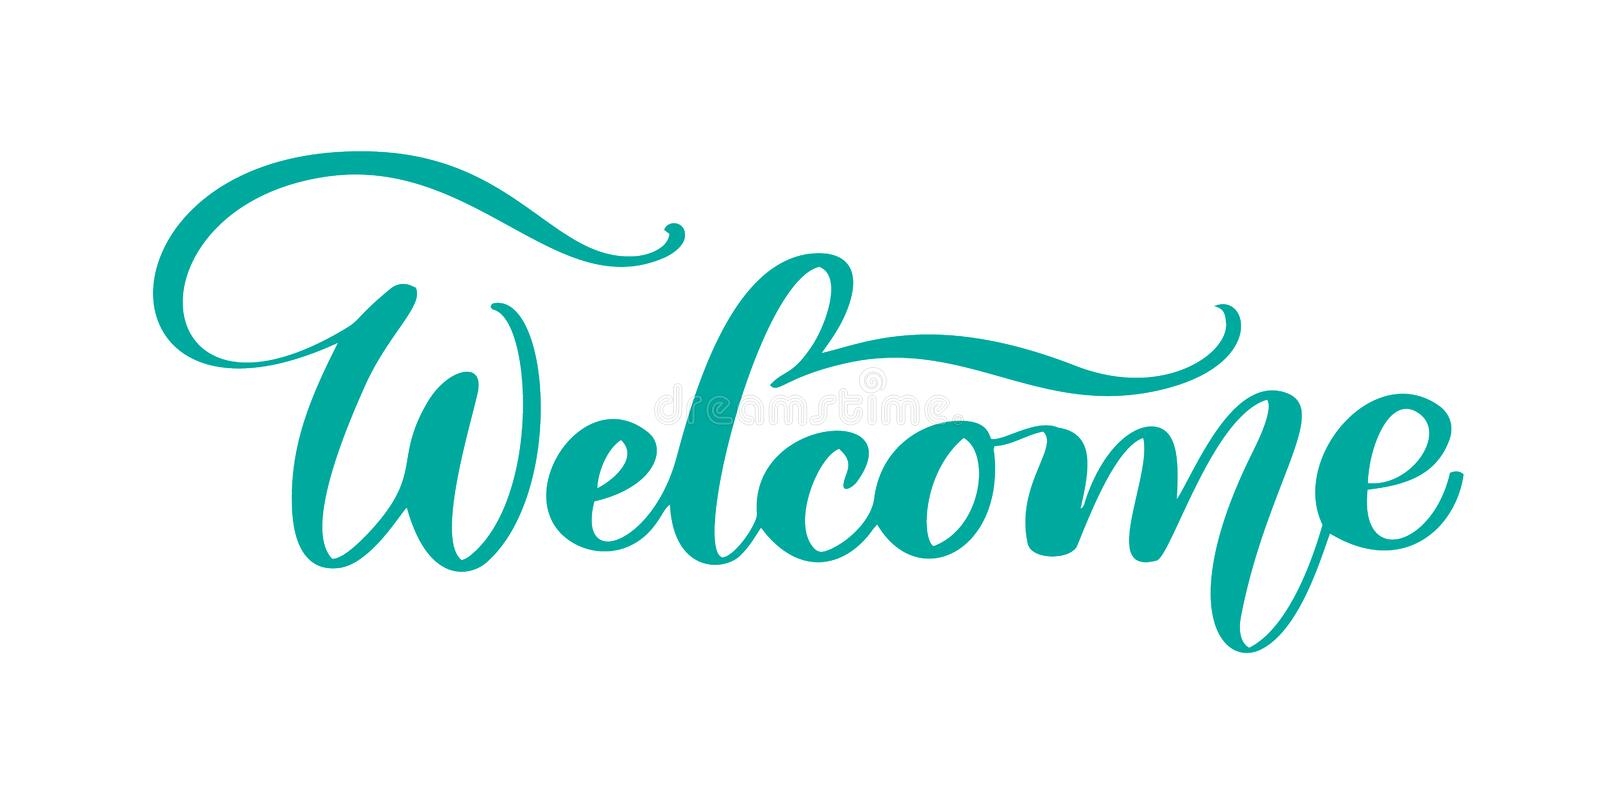 Welcome Hand drawn text. Trendy hand lettering quote, fashion graphics, art print for posters and greeting cards design stock illustration